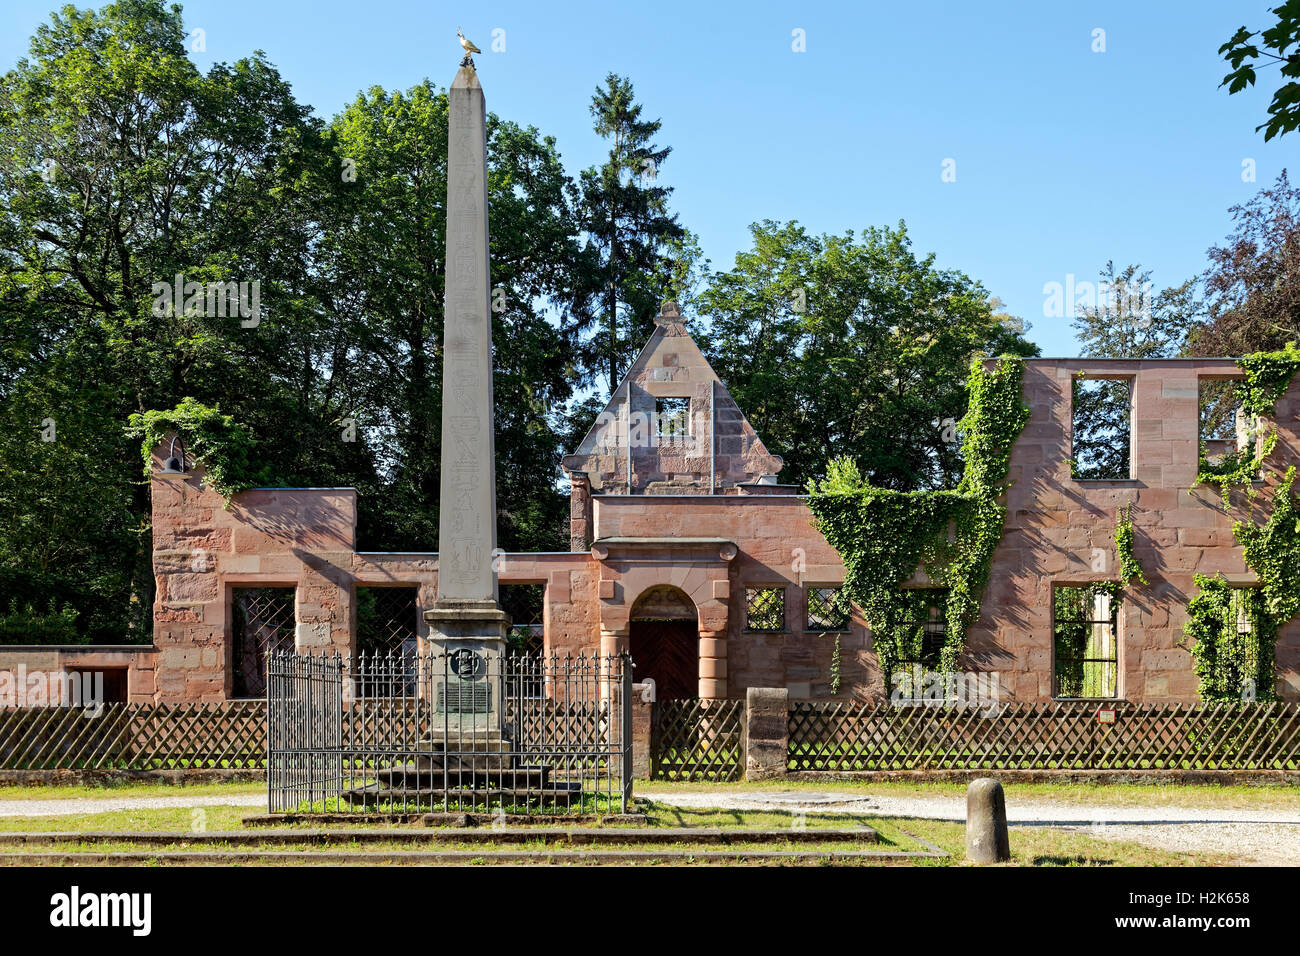 Obelisk with ruins of the of the Hammer family mansion, Historical factory Hammer, Laufamholz, Nuremberg, Middle - Stock Image